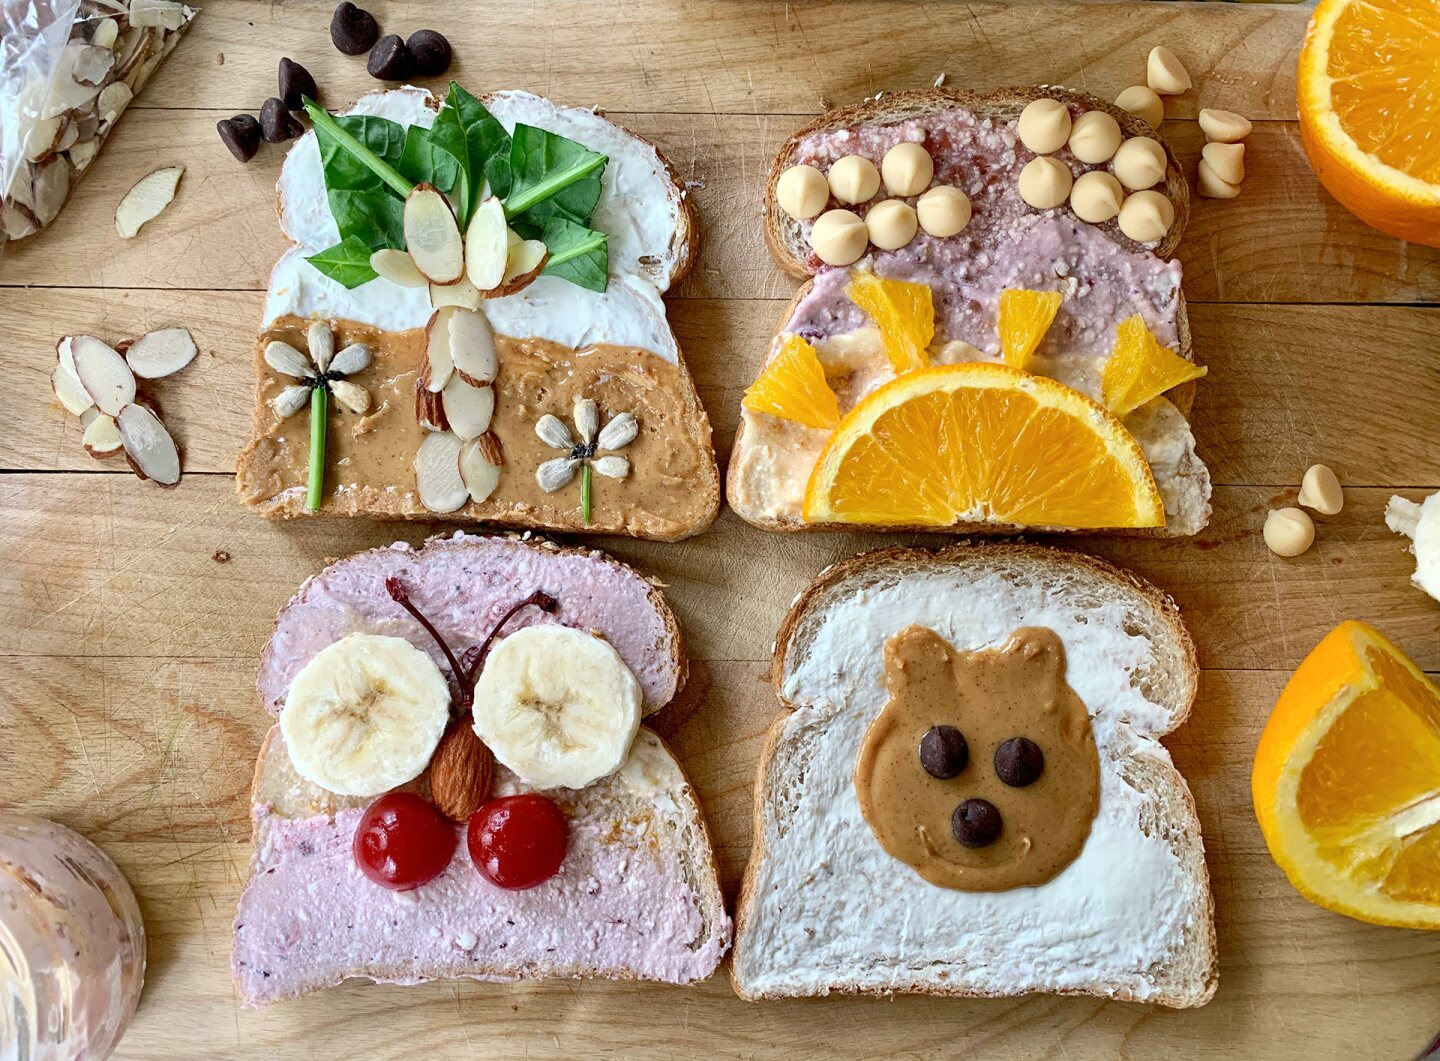 Four pieces of decorated toast featuring a palm tree, sunset, butterfly and teddy bear.